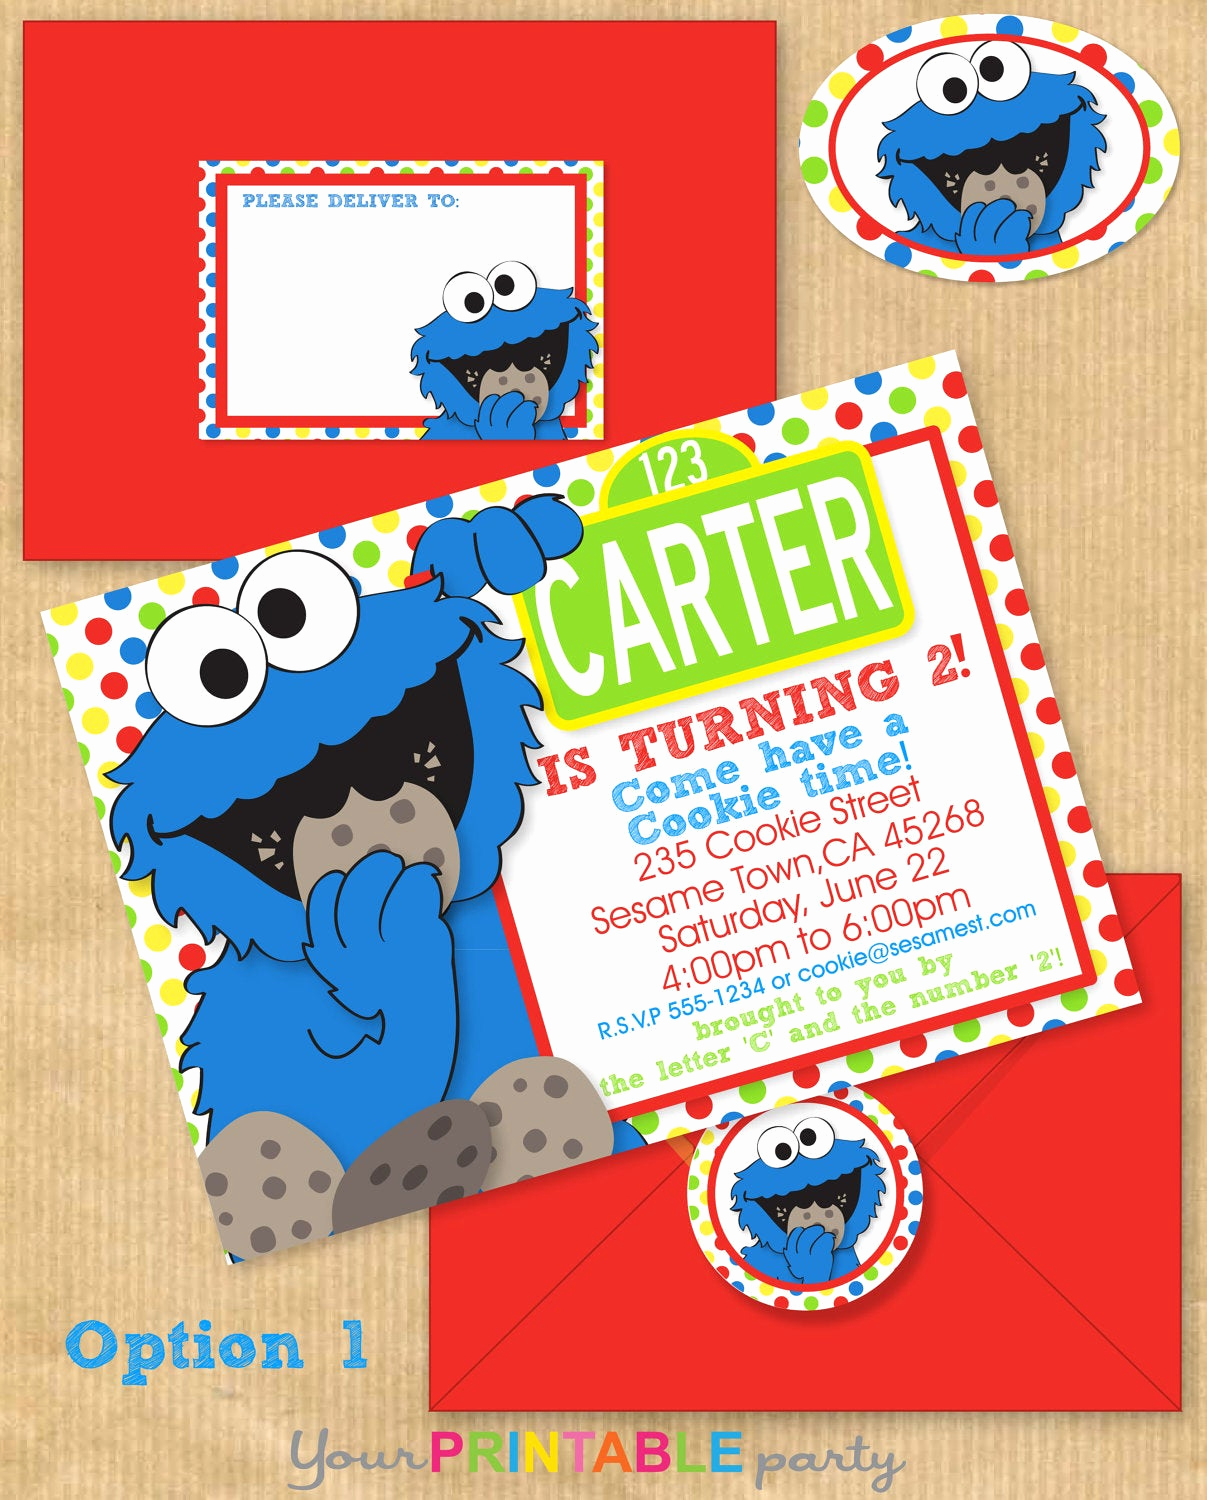 Cookie Monster Invitation Template Unique Cookie Monster Party Invitation 5x7 with Address Labels